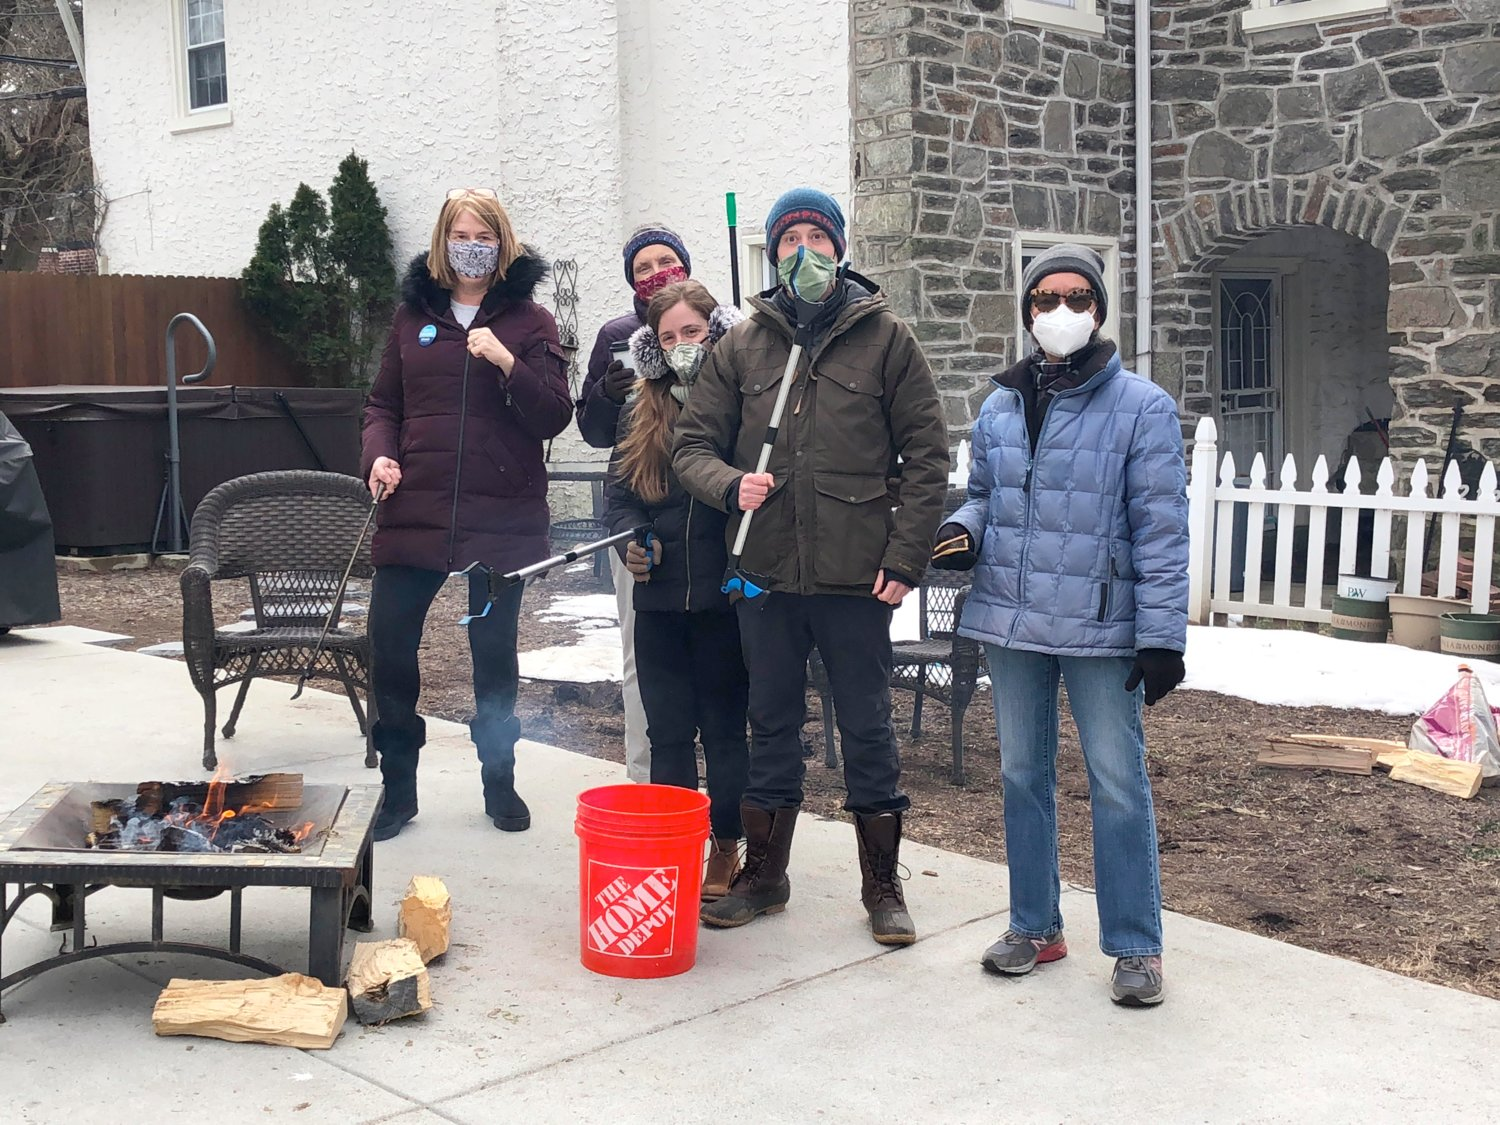 Members of the Mt. Airy Trash Team (from left) Jennifer Keene, Peggy Thomson, Natalie Sloane, Brody Rosenfeld and Dawn James.